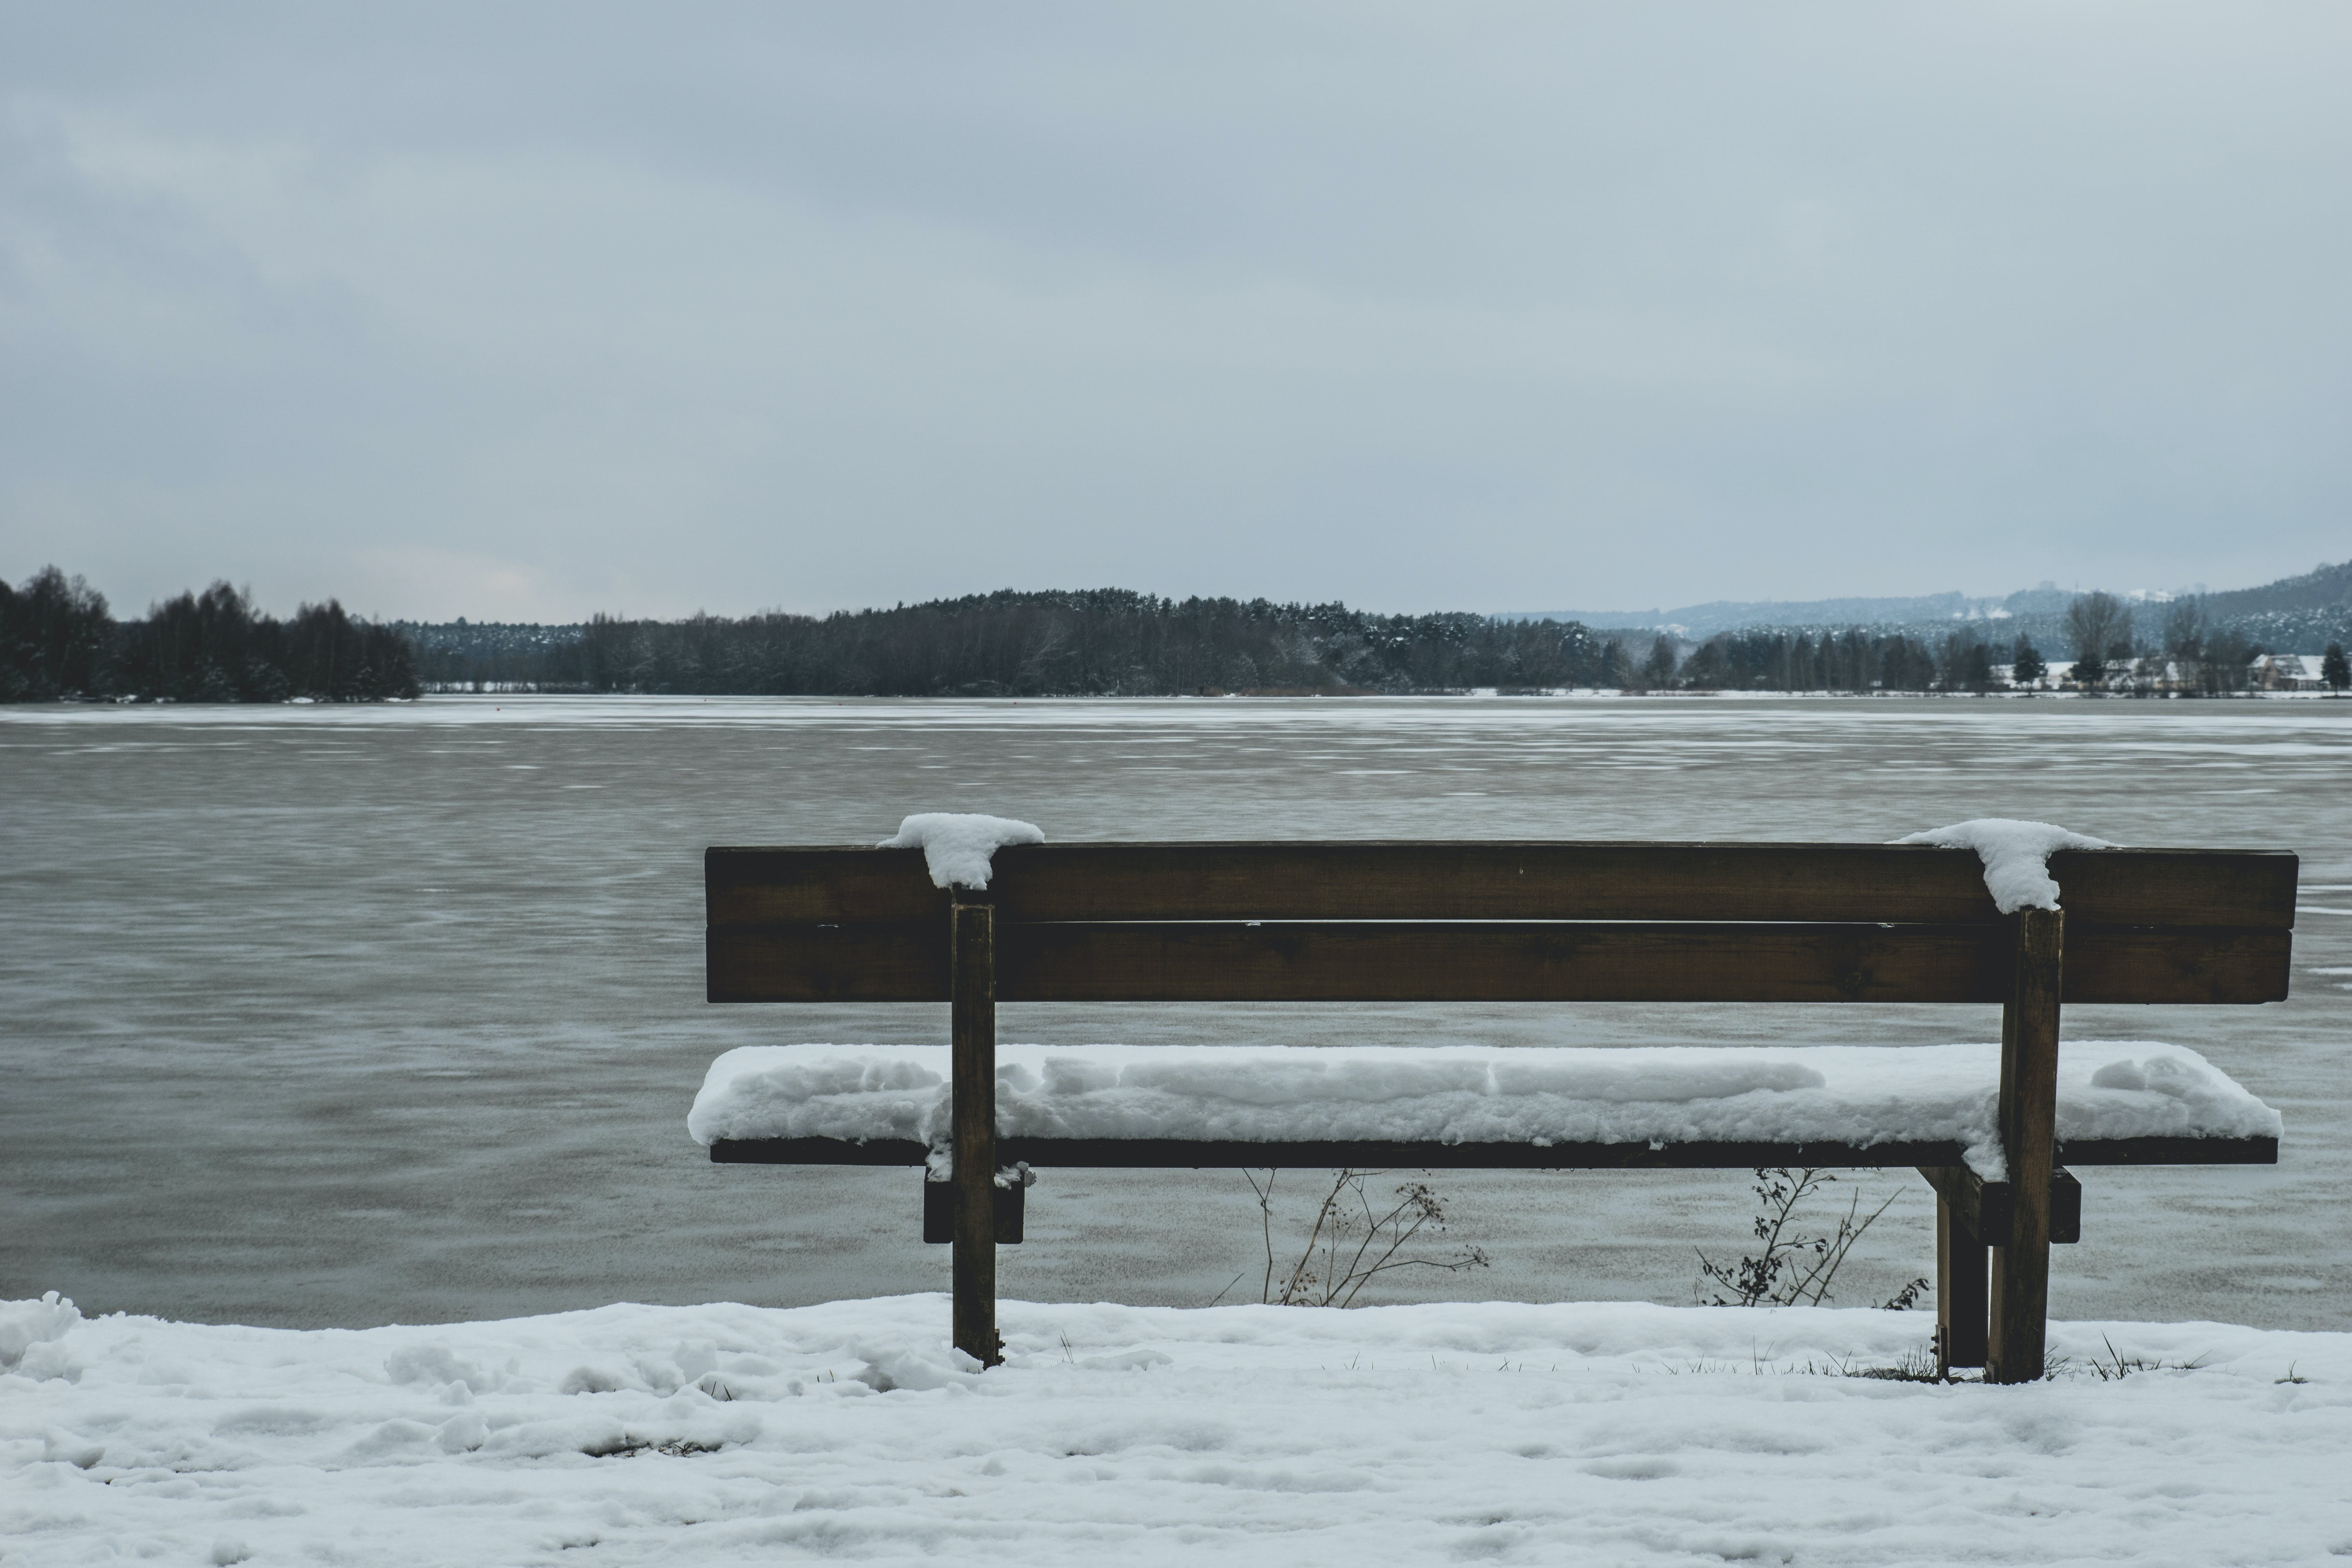 Snow Covered Bench in Front of Body of Wa Ter